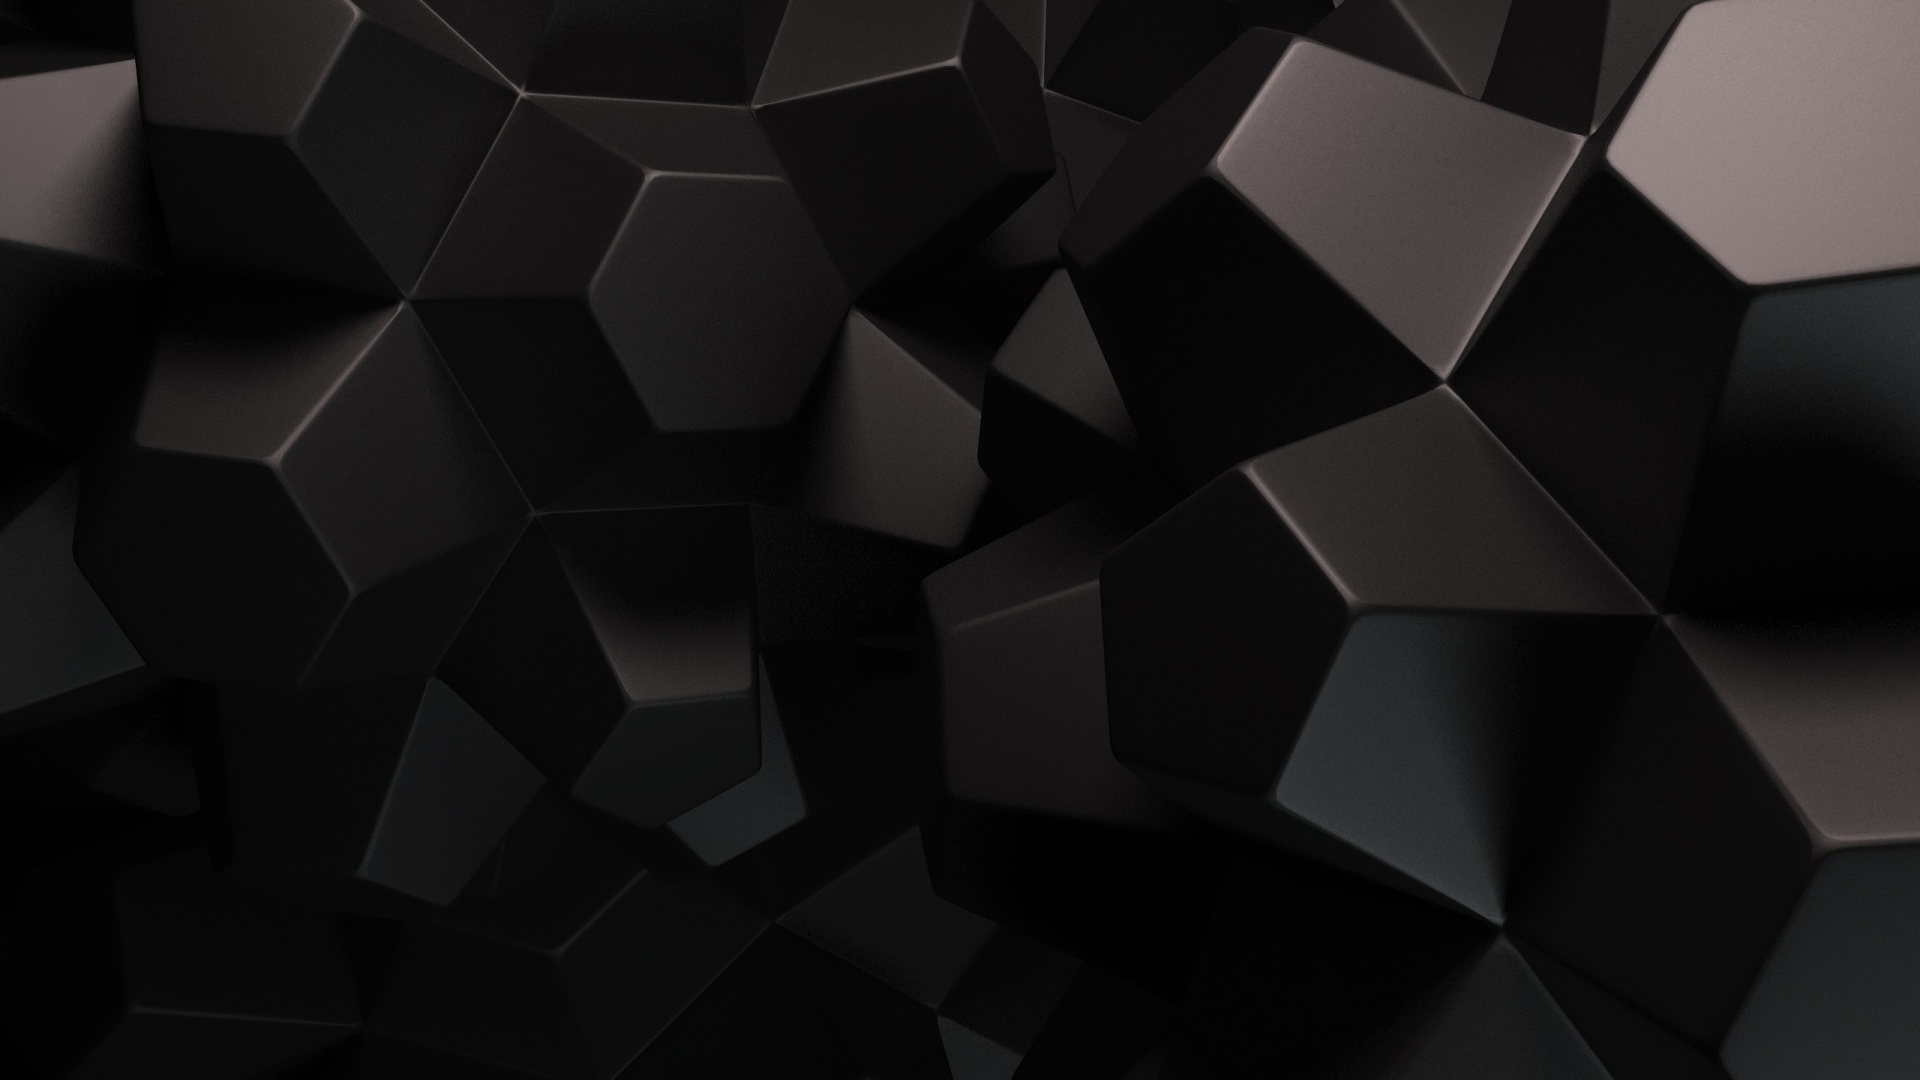 black-abstract-wallpaper-1920x1080 | wallpaper.wiki